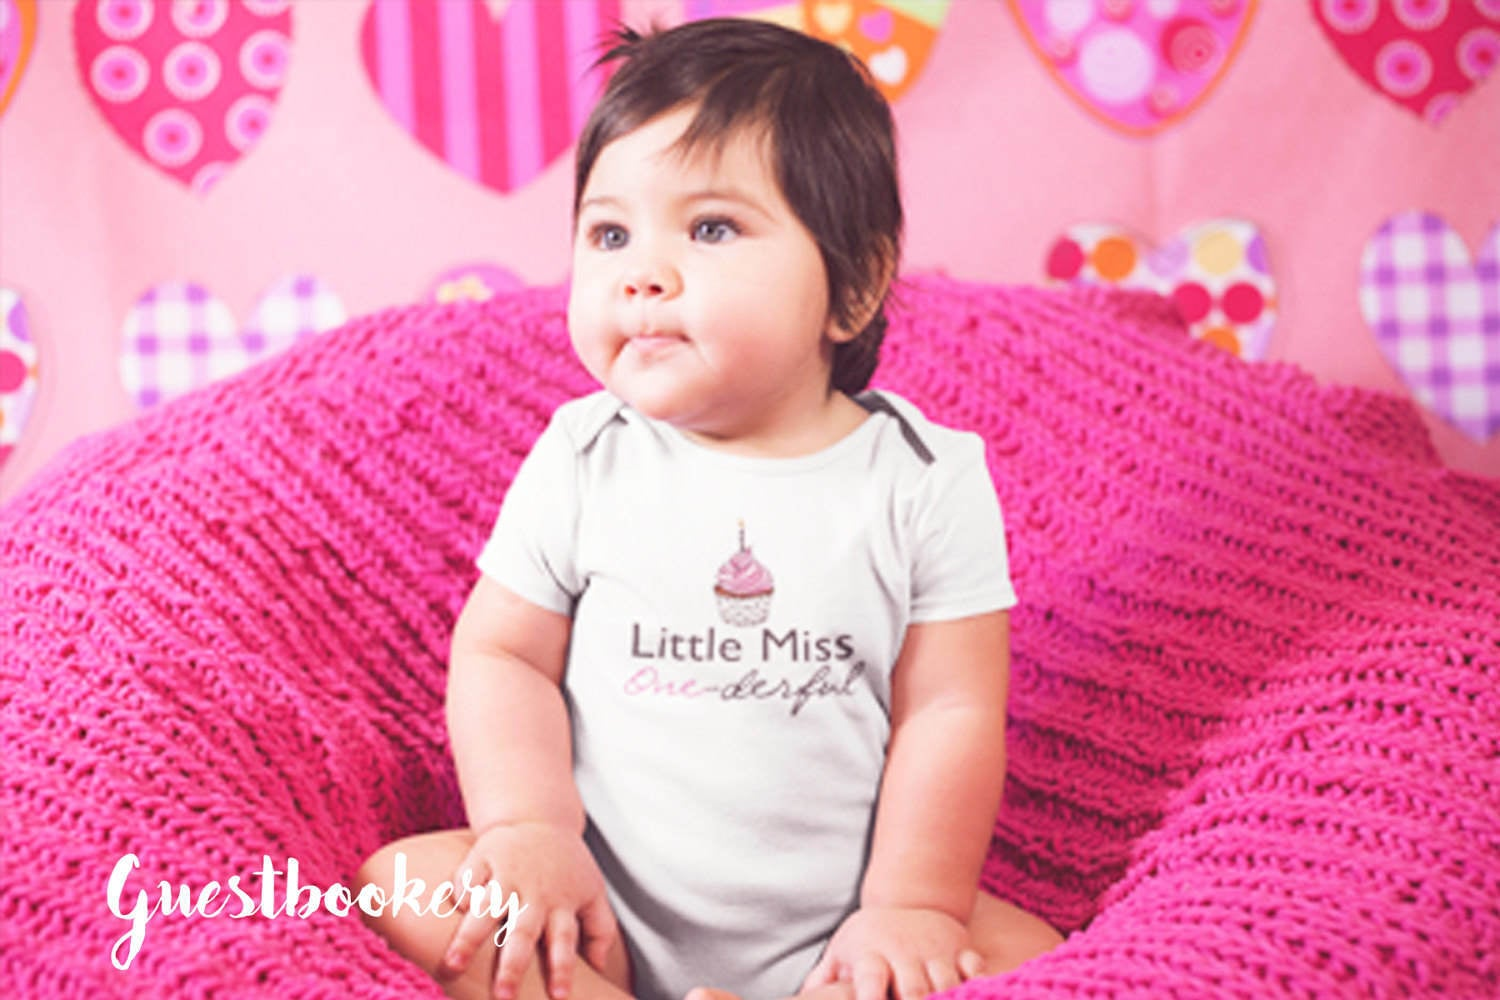 Little Miss Onederful Onesie - Guestbookery